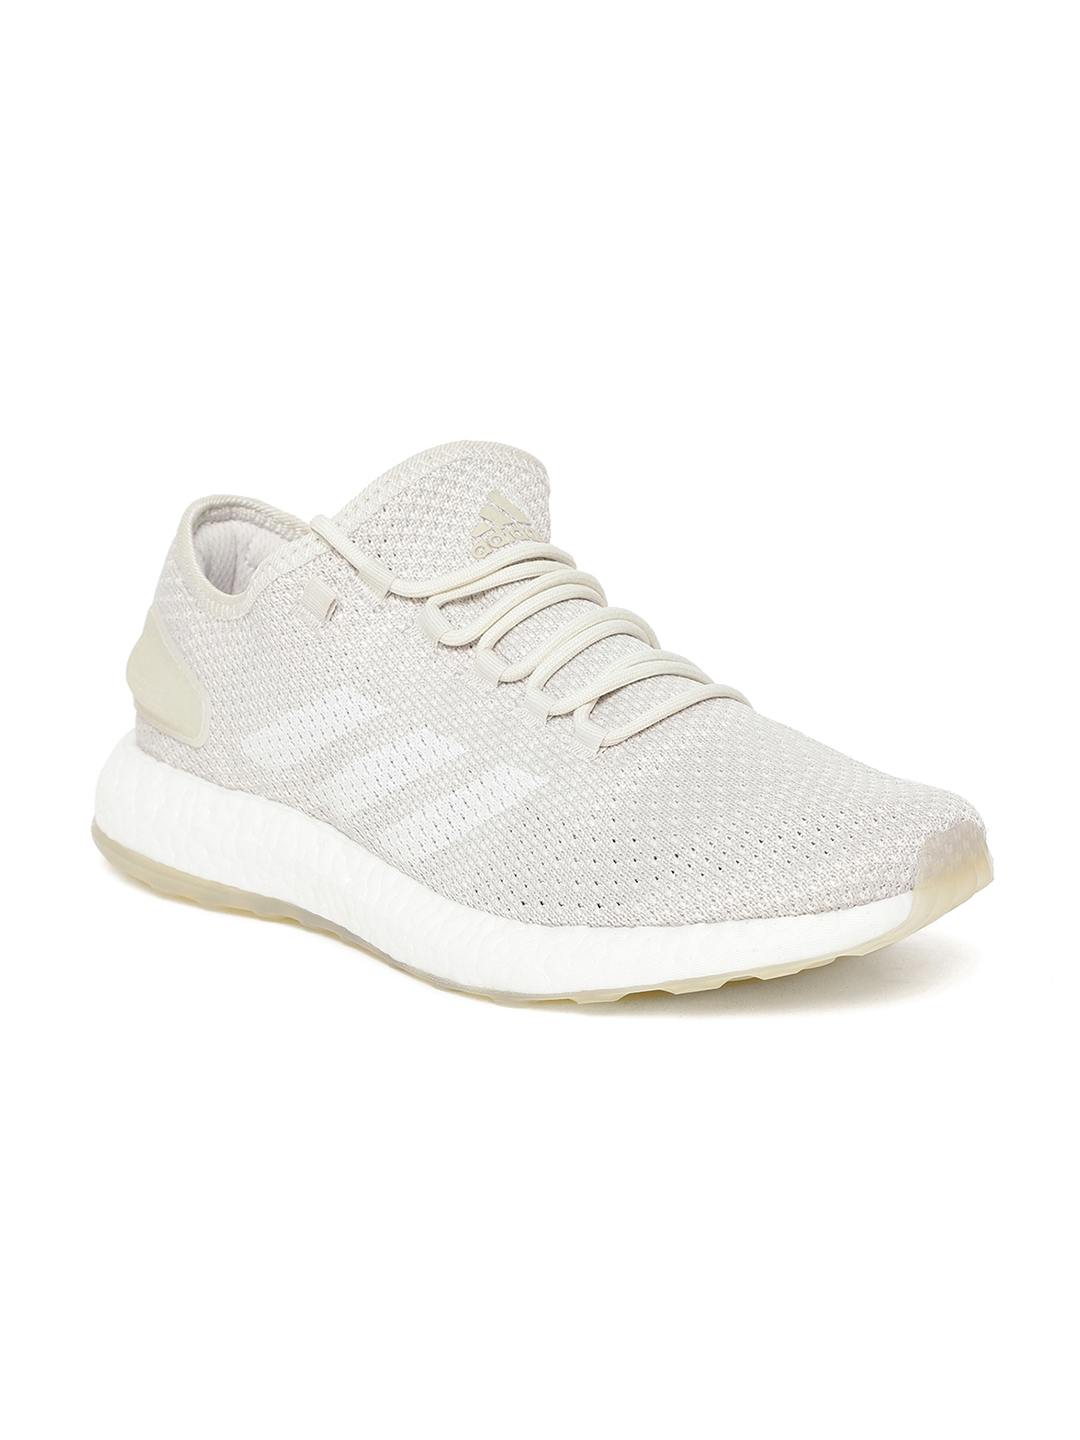 c3bb71a9b32b2 Buy ADIDAS Men Off White Pureboost Clima Running Shoes - Sports ...